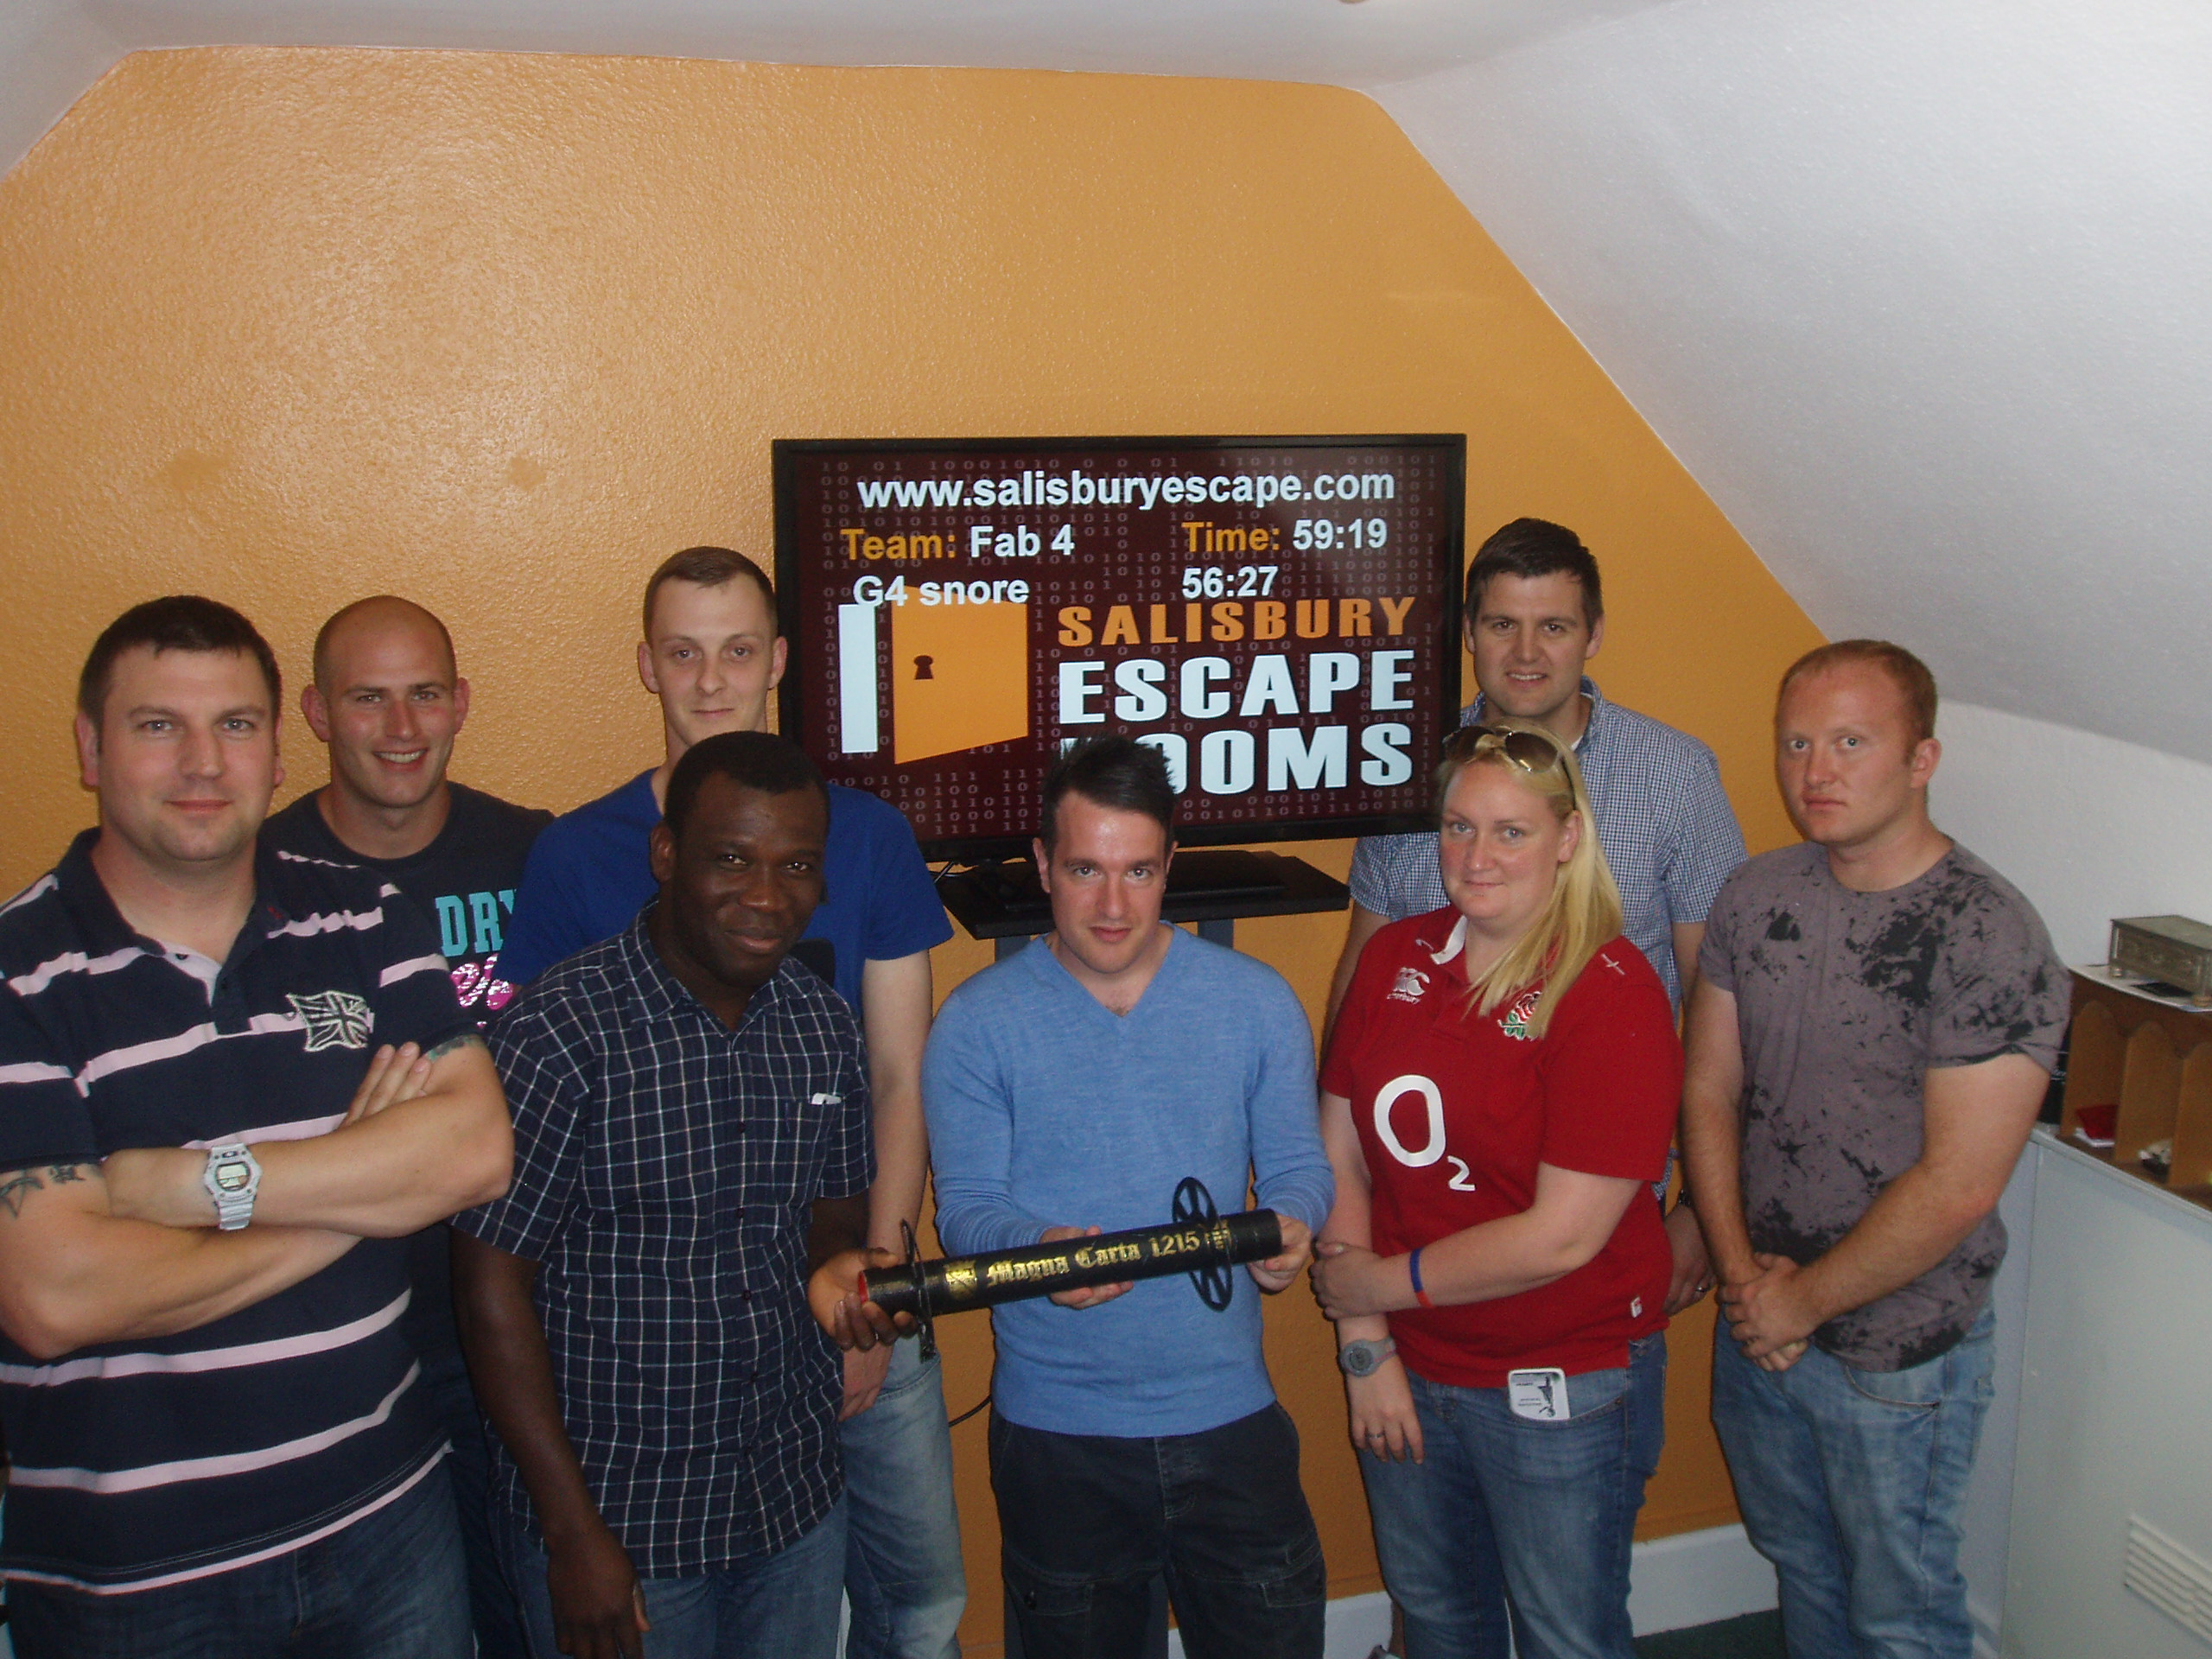 Excellent team building - so much better than than the usual corporate activity